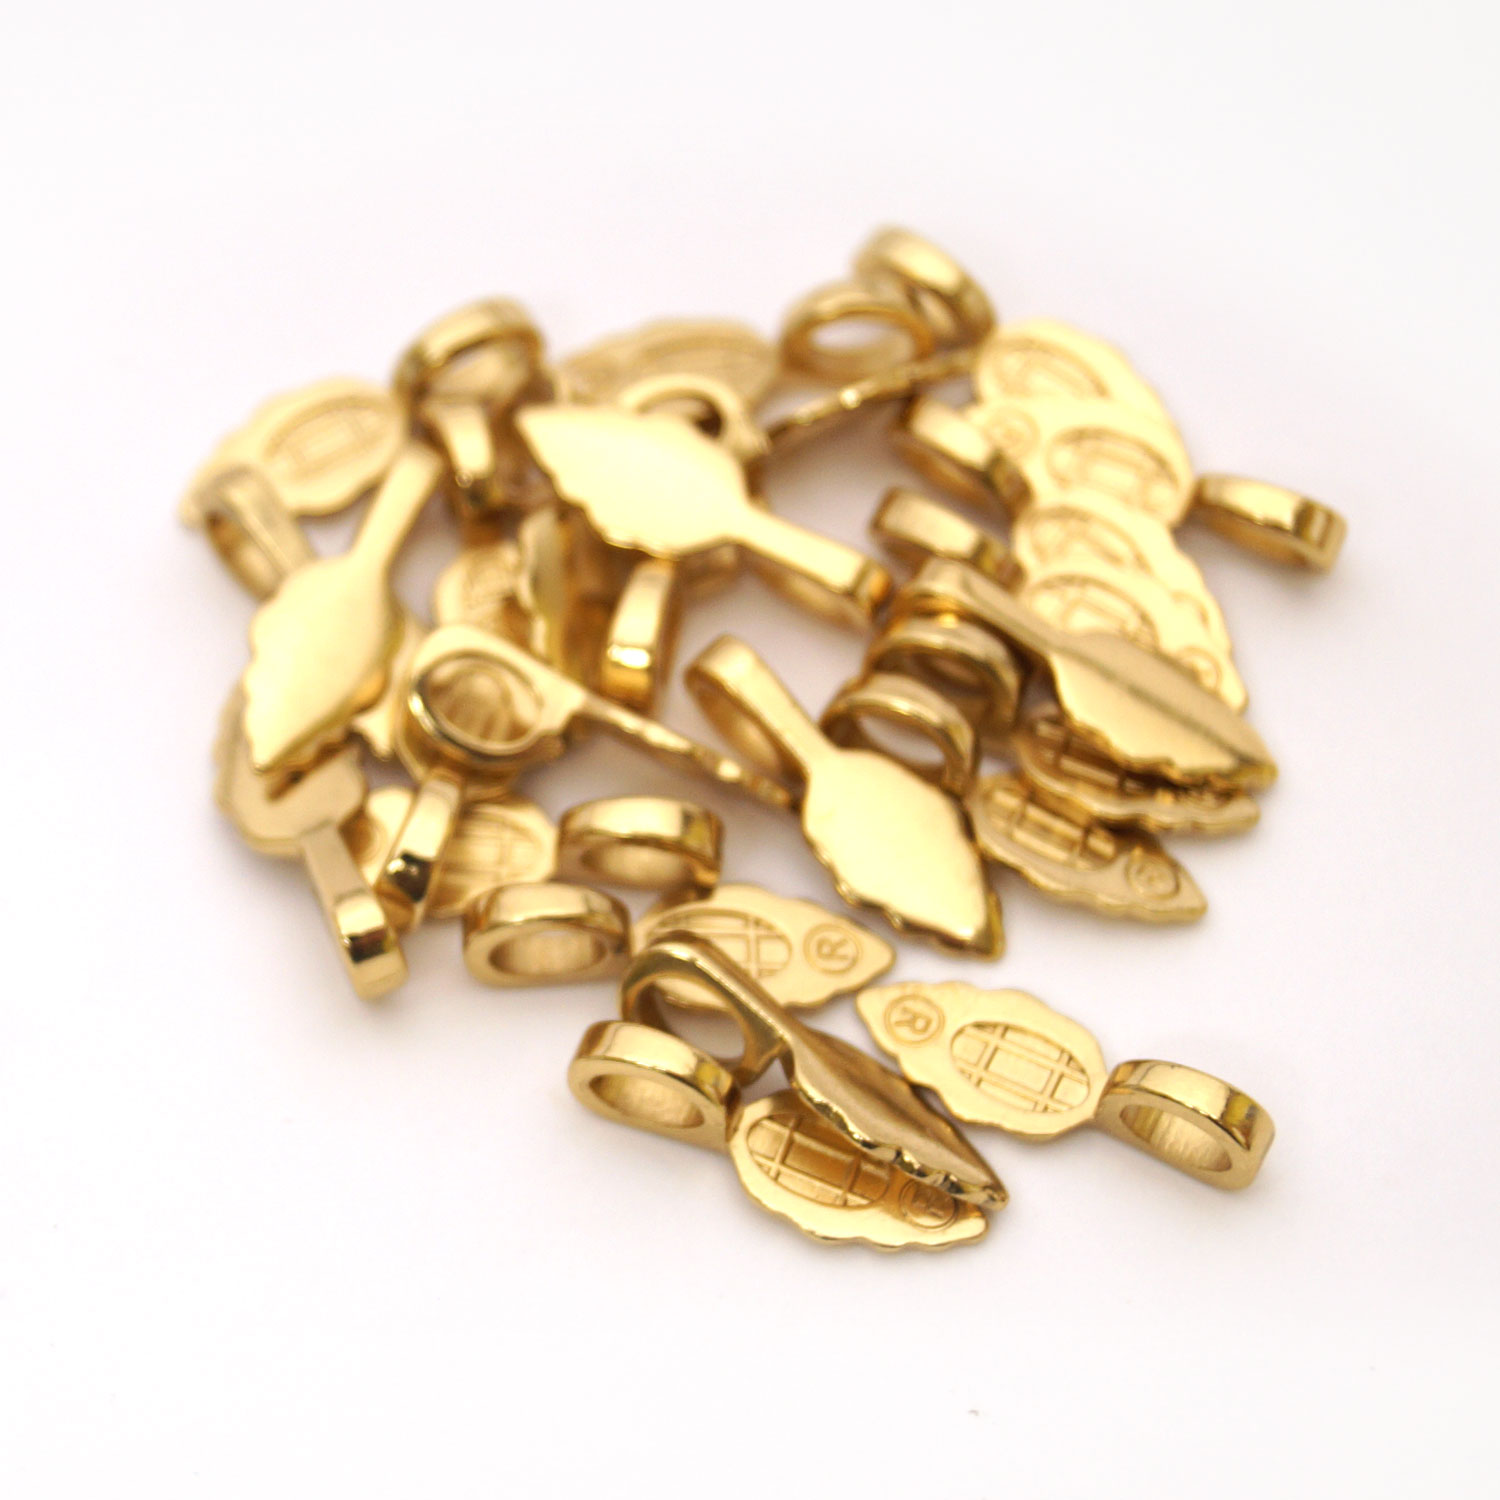 Large 18k Gold Plated Jewelry Bails 25 Pack And Clasps